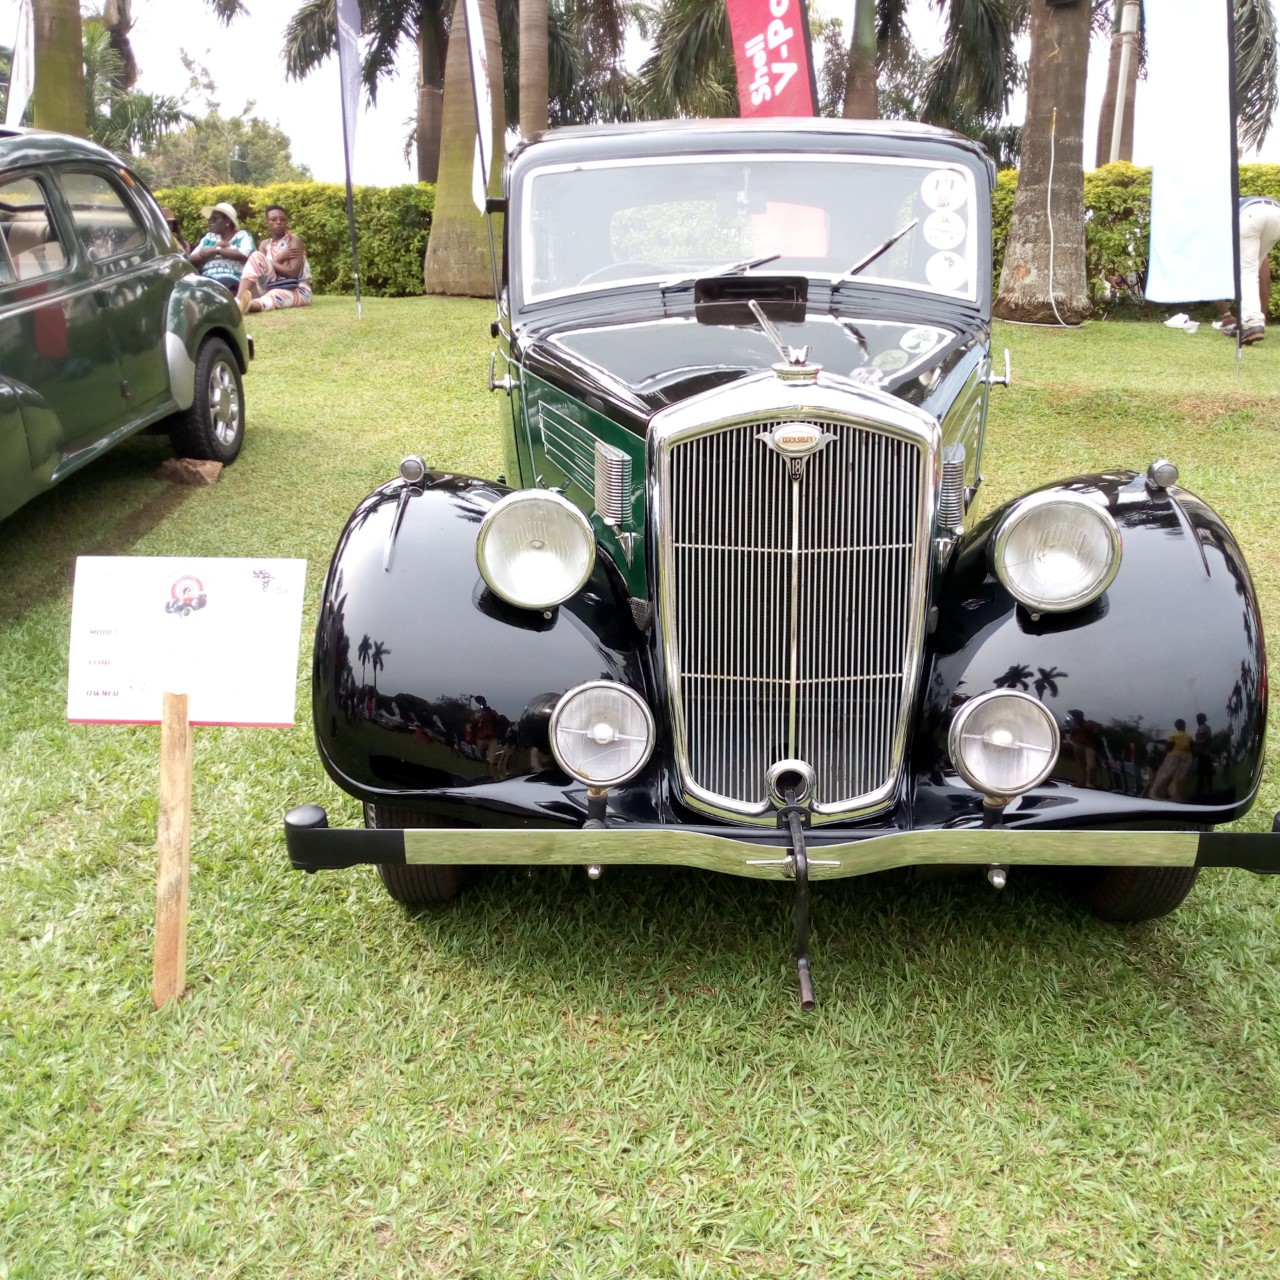 1937 Model  Hosley  owned by Kalvin Kaggwa  emerged as the overall winner at the 8th CBA Vintage Classic Auto show at Sheraton Hotel Gardens. (PHOTO/Abraham Mutalyebwa)